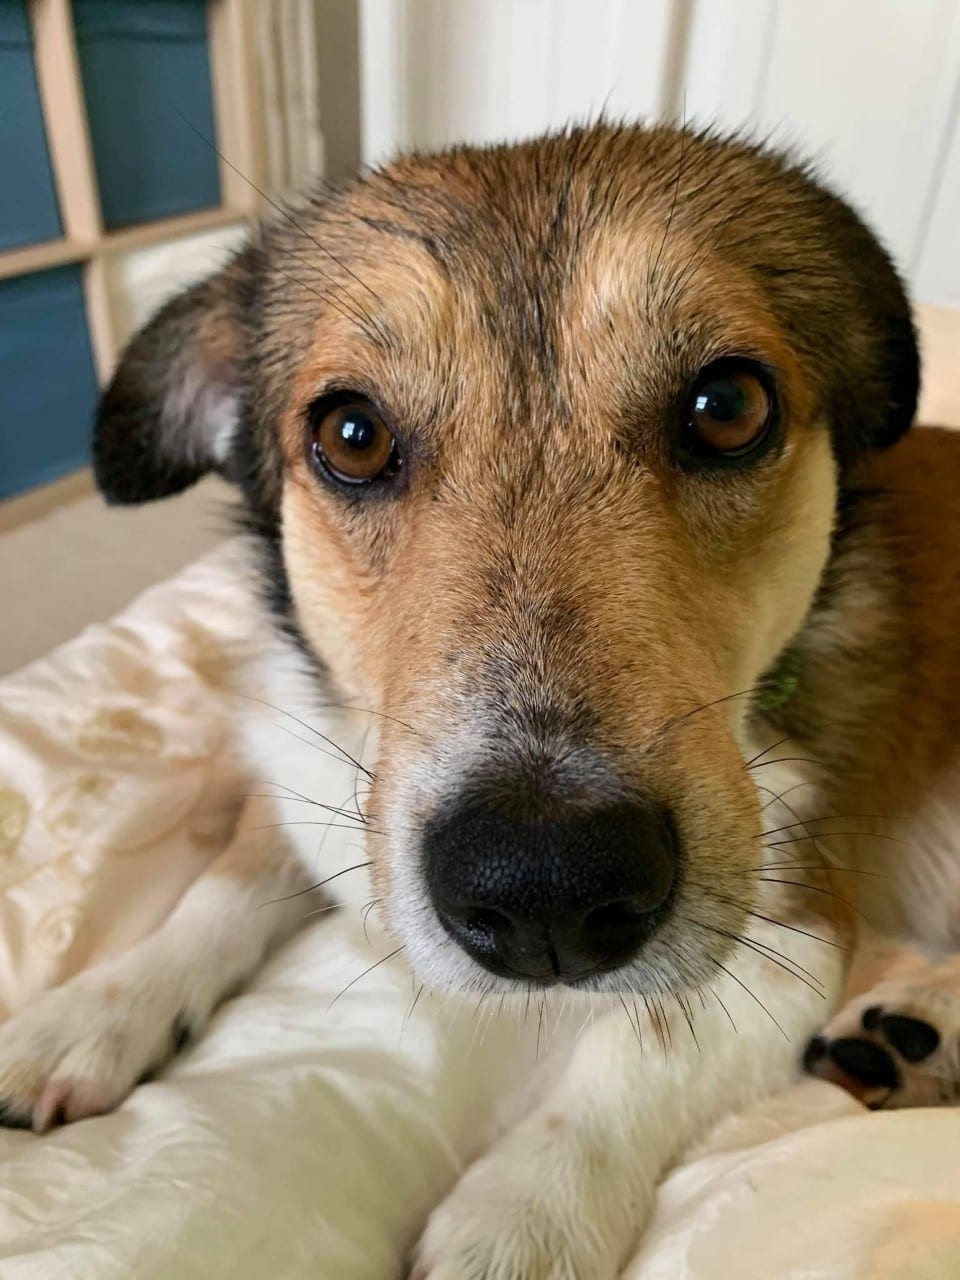 Dilly and brown and white Romanian rescue dog | 1 Dog At a Time Rescue UK